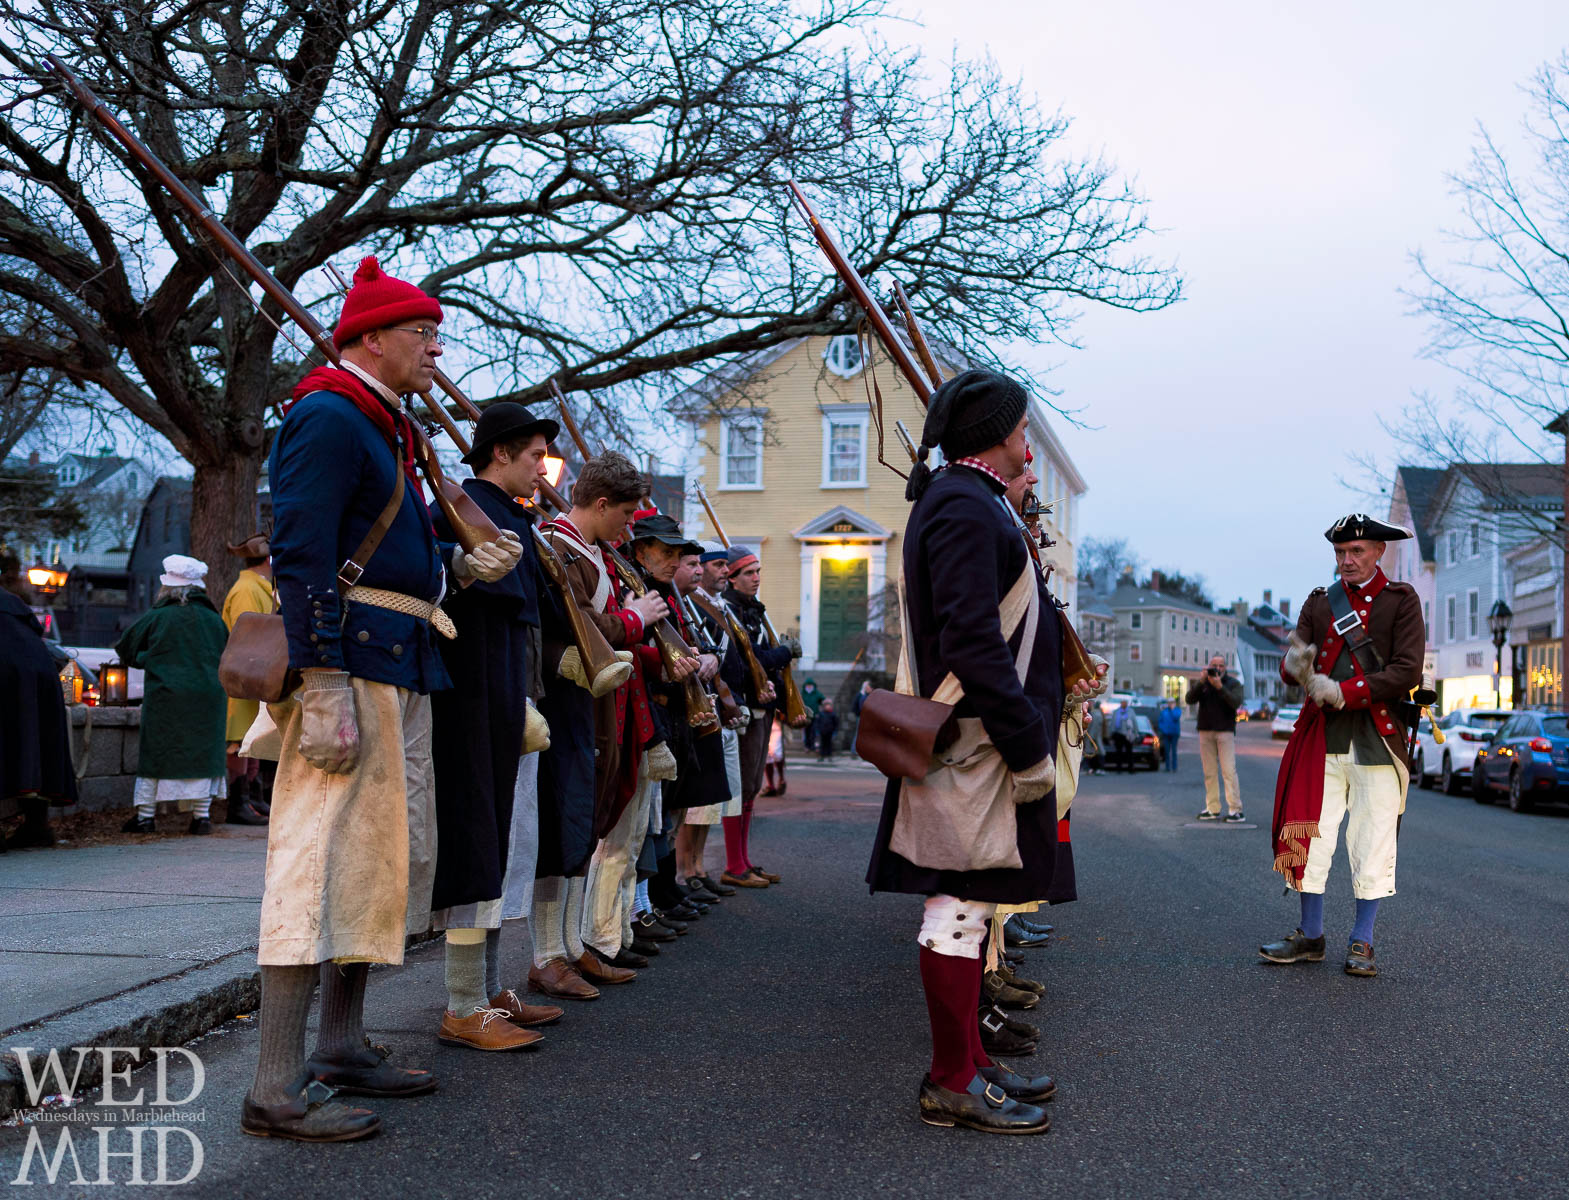 Glover's regiment stands approximately two feet apart while gathered in front of Old Town House before their annual march to Old Burial Hill